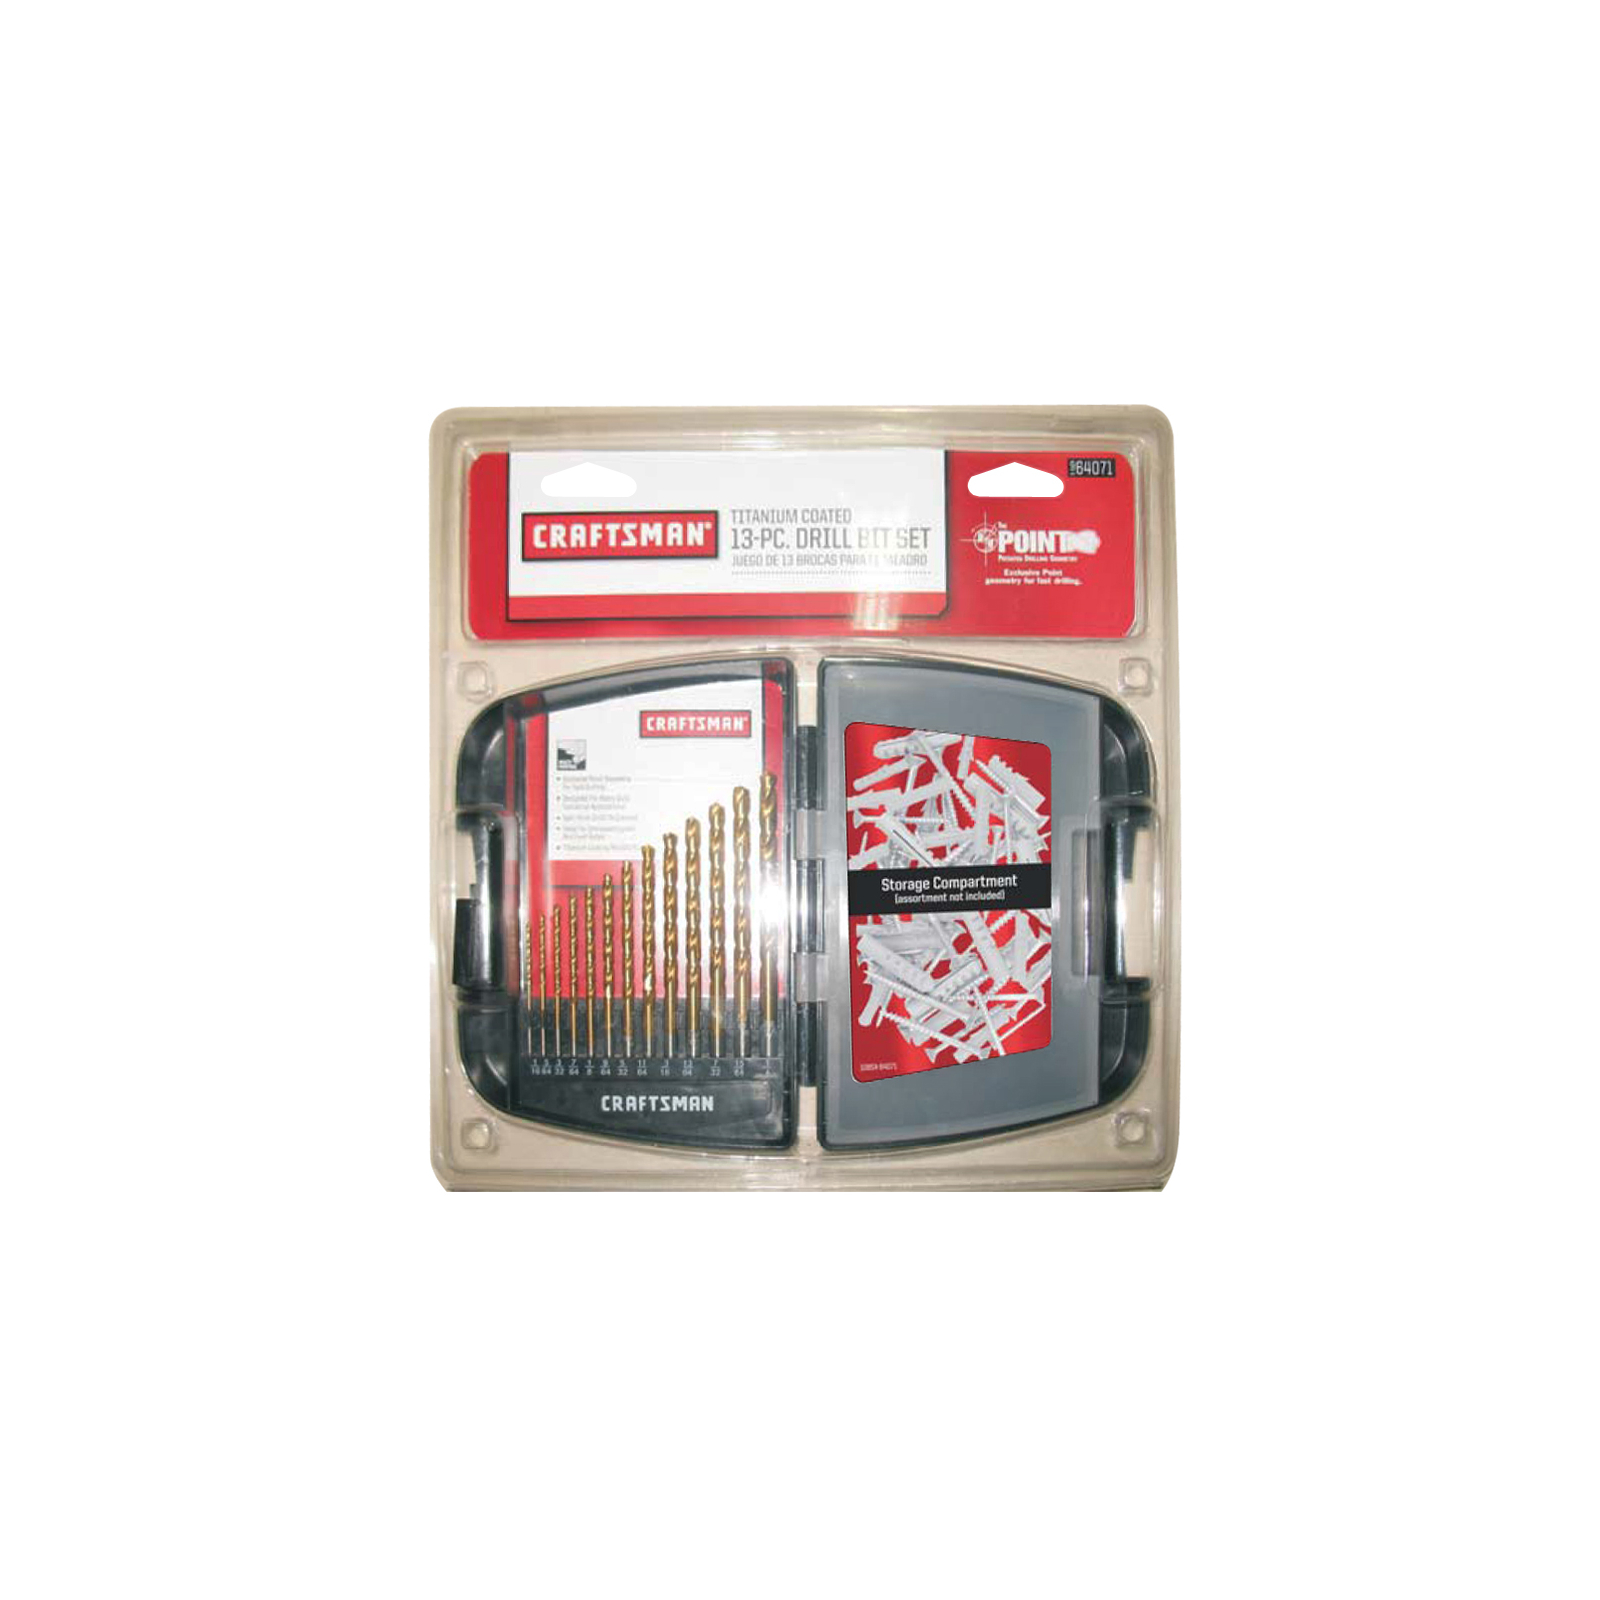 Craftsman 13 pc. Titanium Coated Drill Bit Set